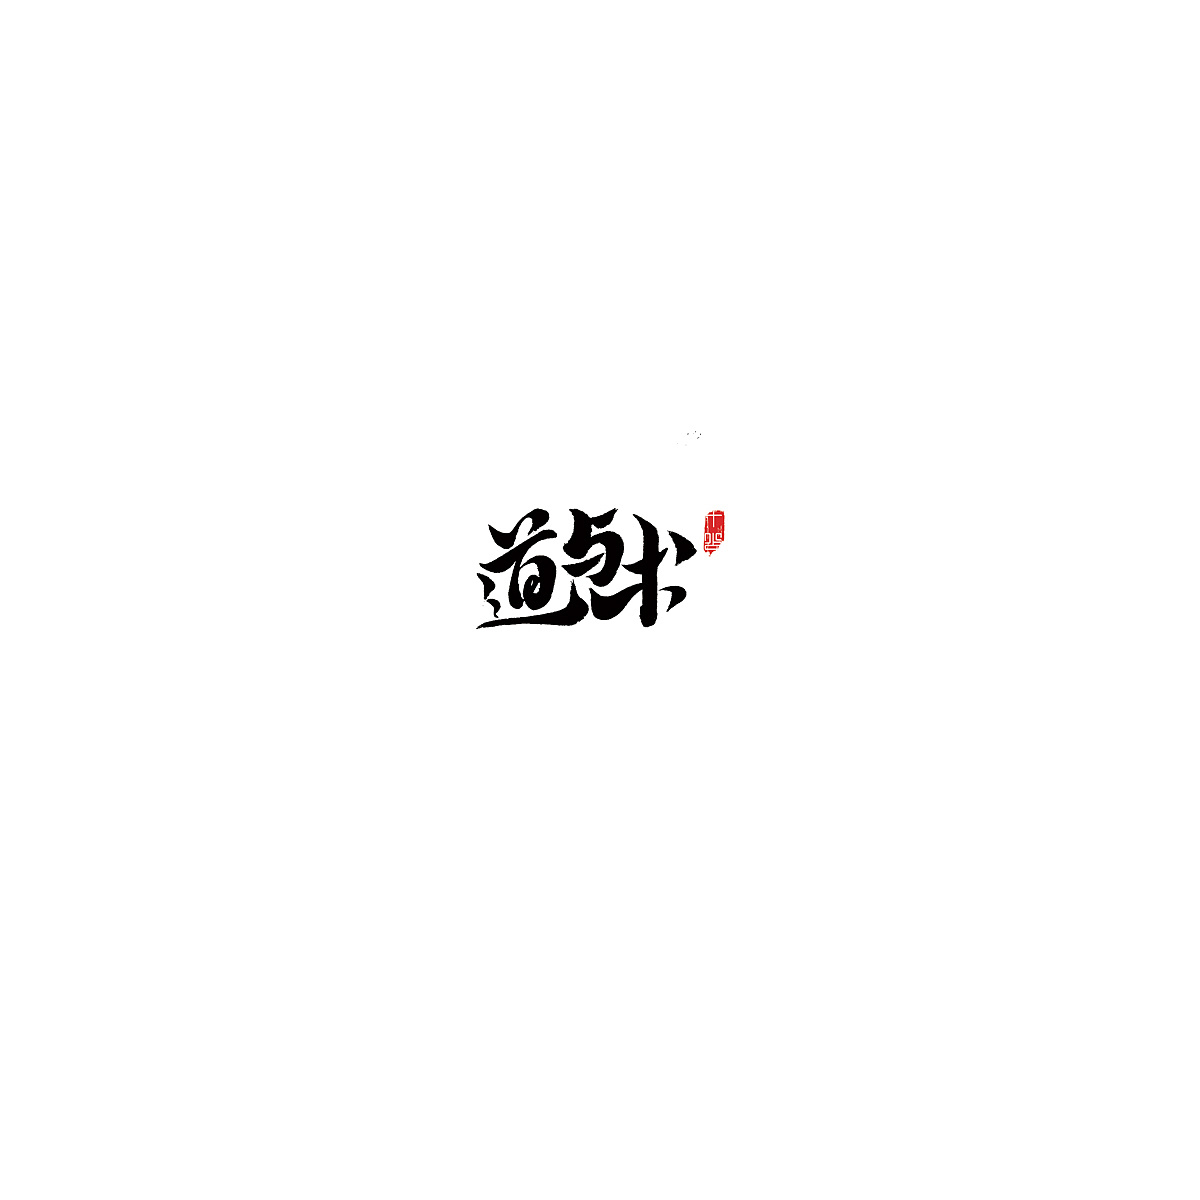 12P Chinese traditional calligraphy brush calligraphy font style appreciation #.675